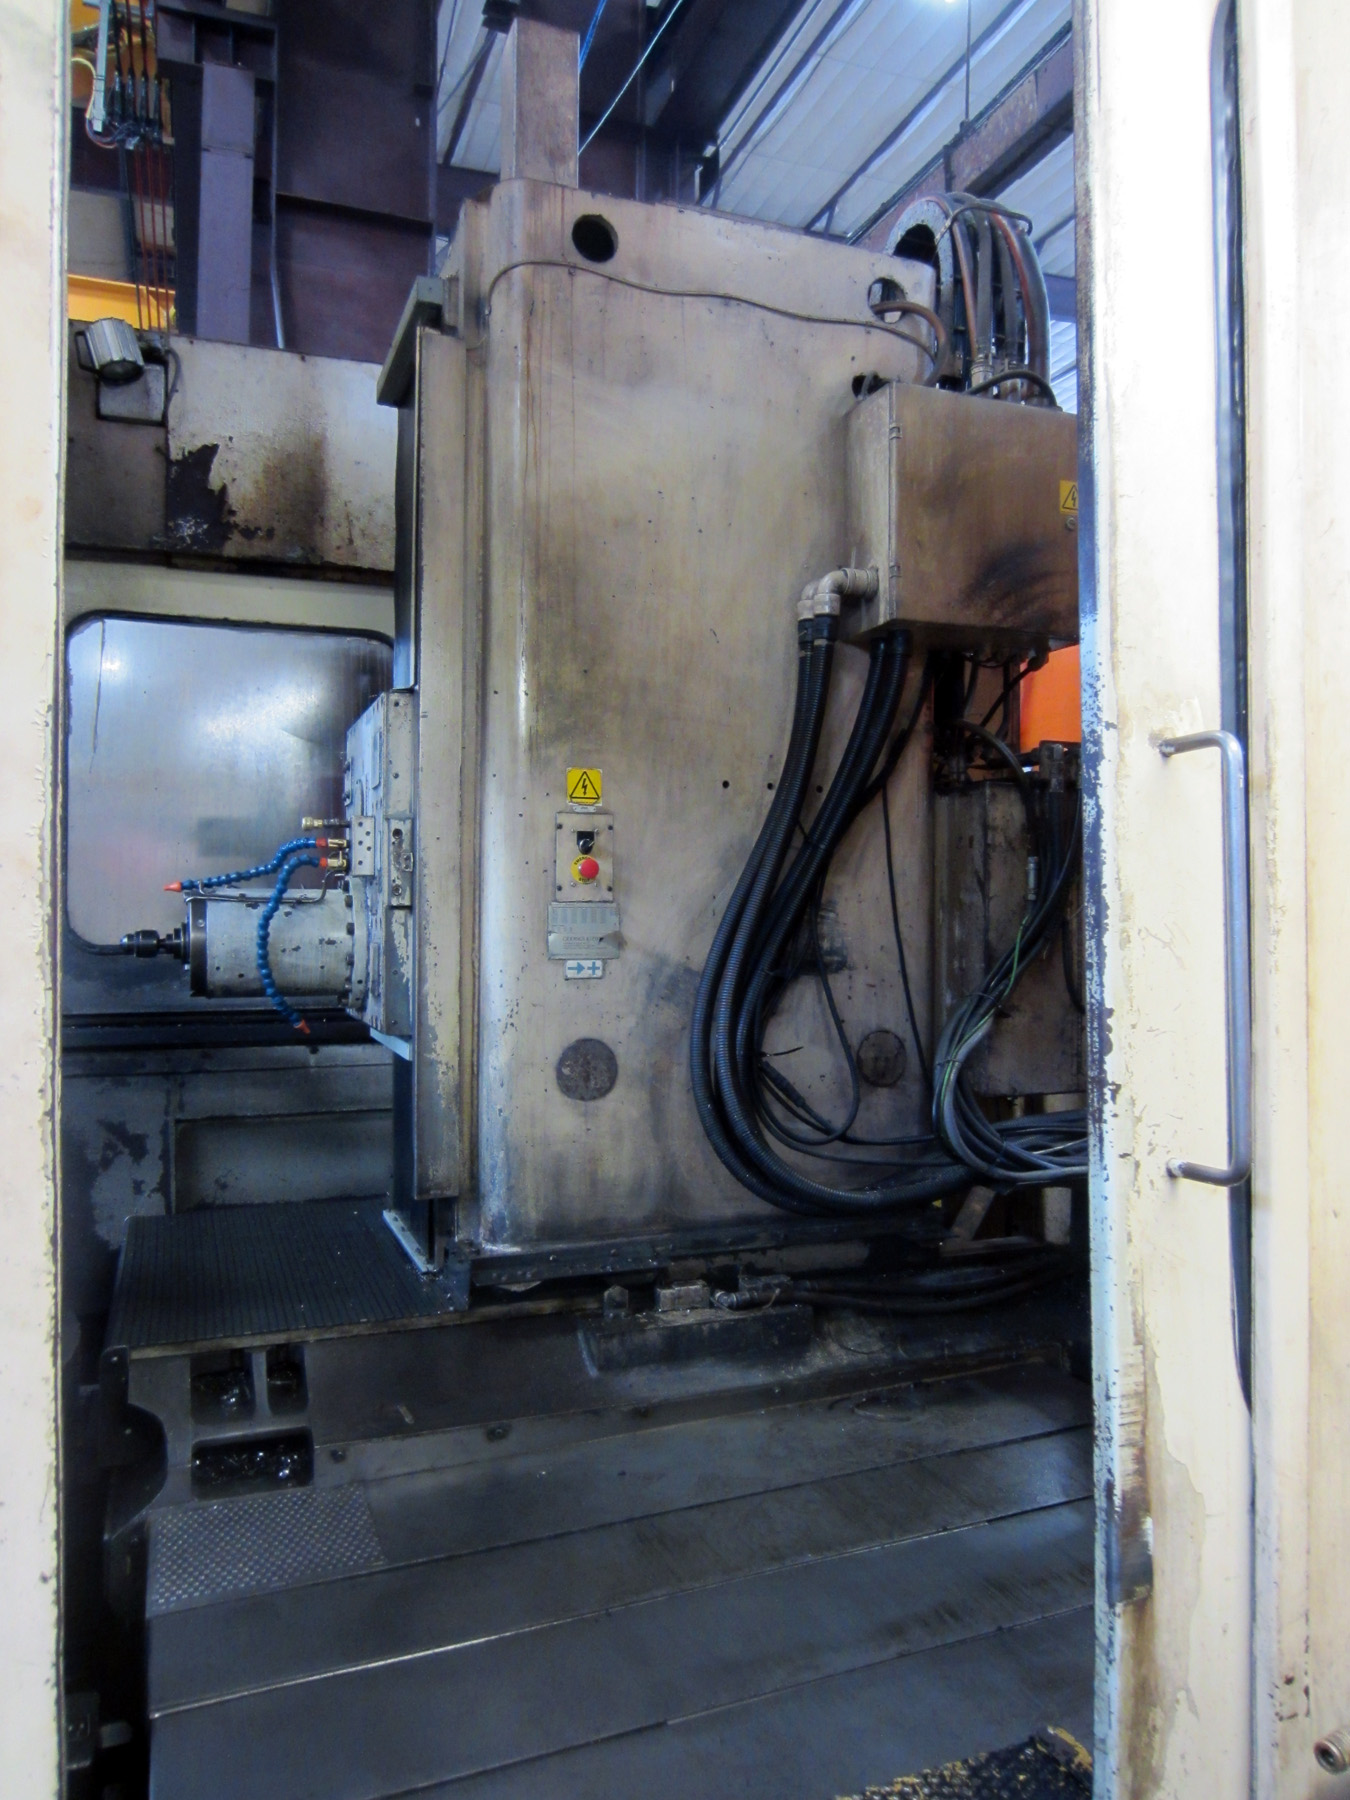 USED, GIDDINGS & LEWIS ORION PREMIER 1000 TWIN PALLET HORIZONTAL MACHINING CENTER